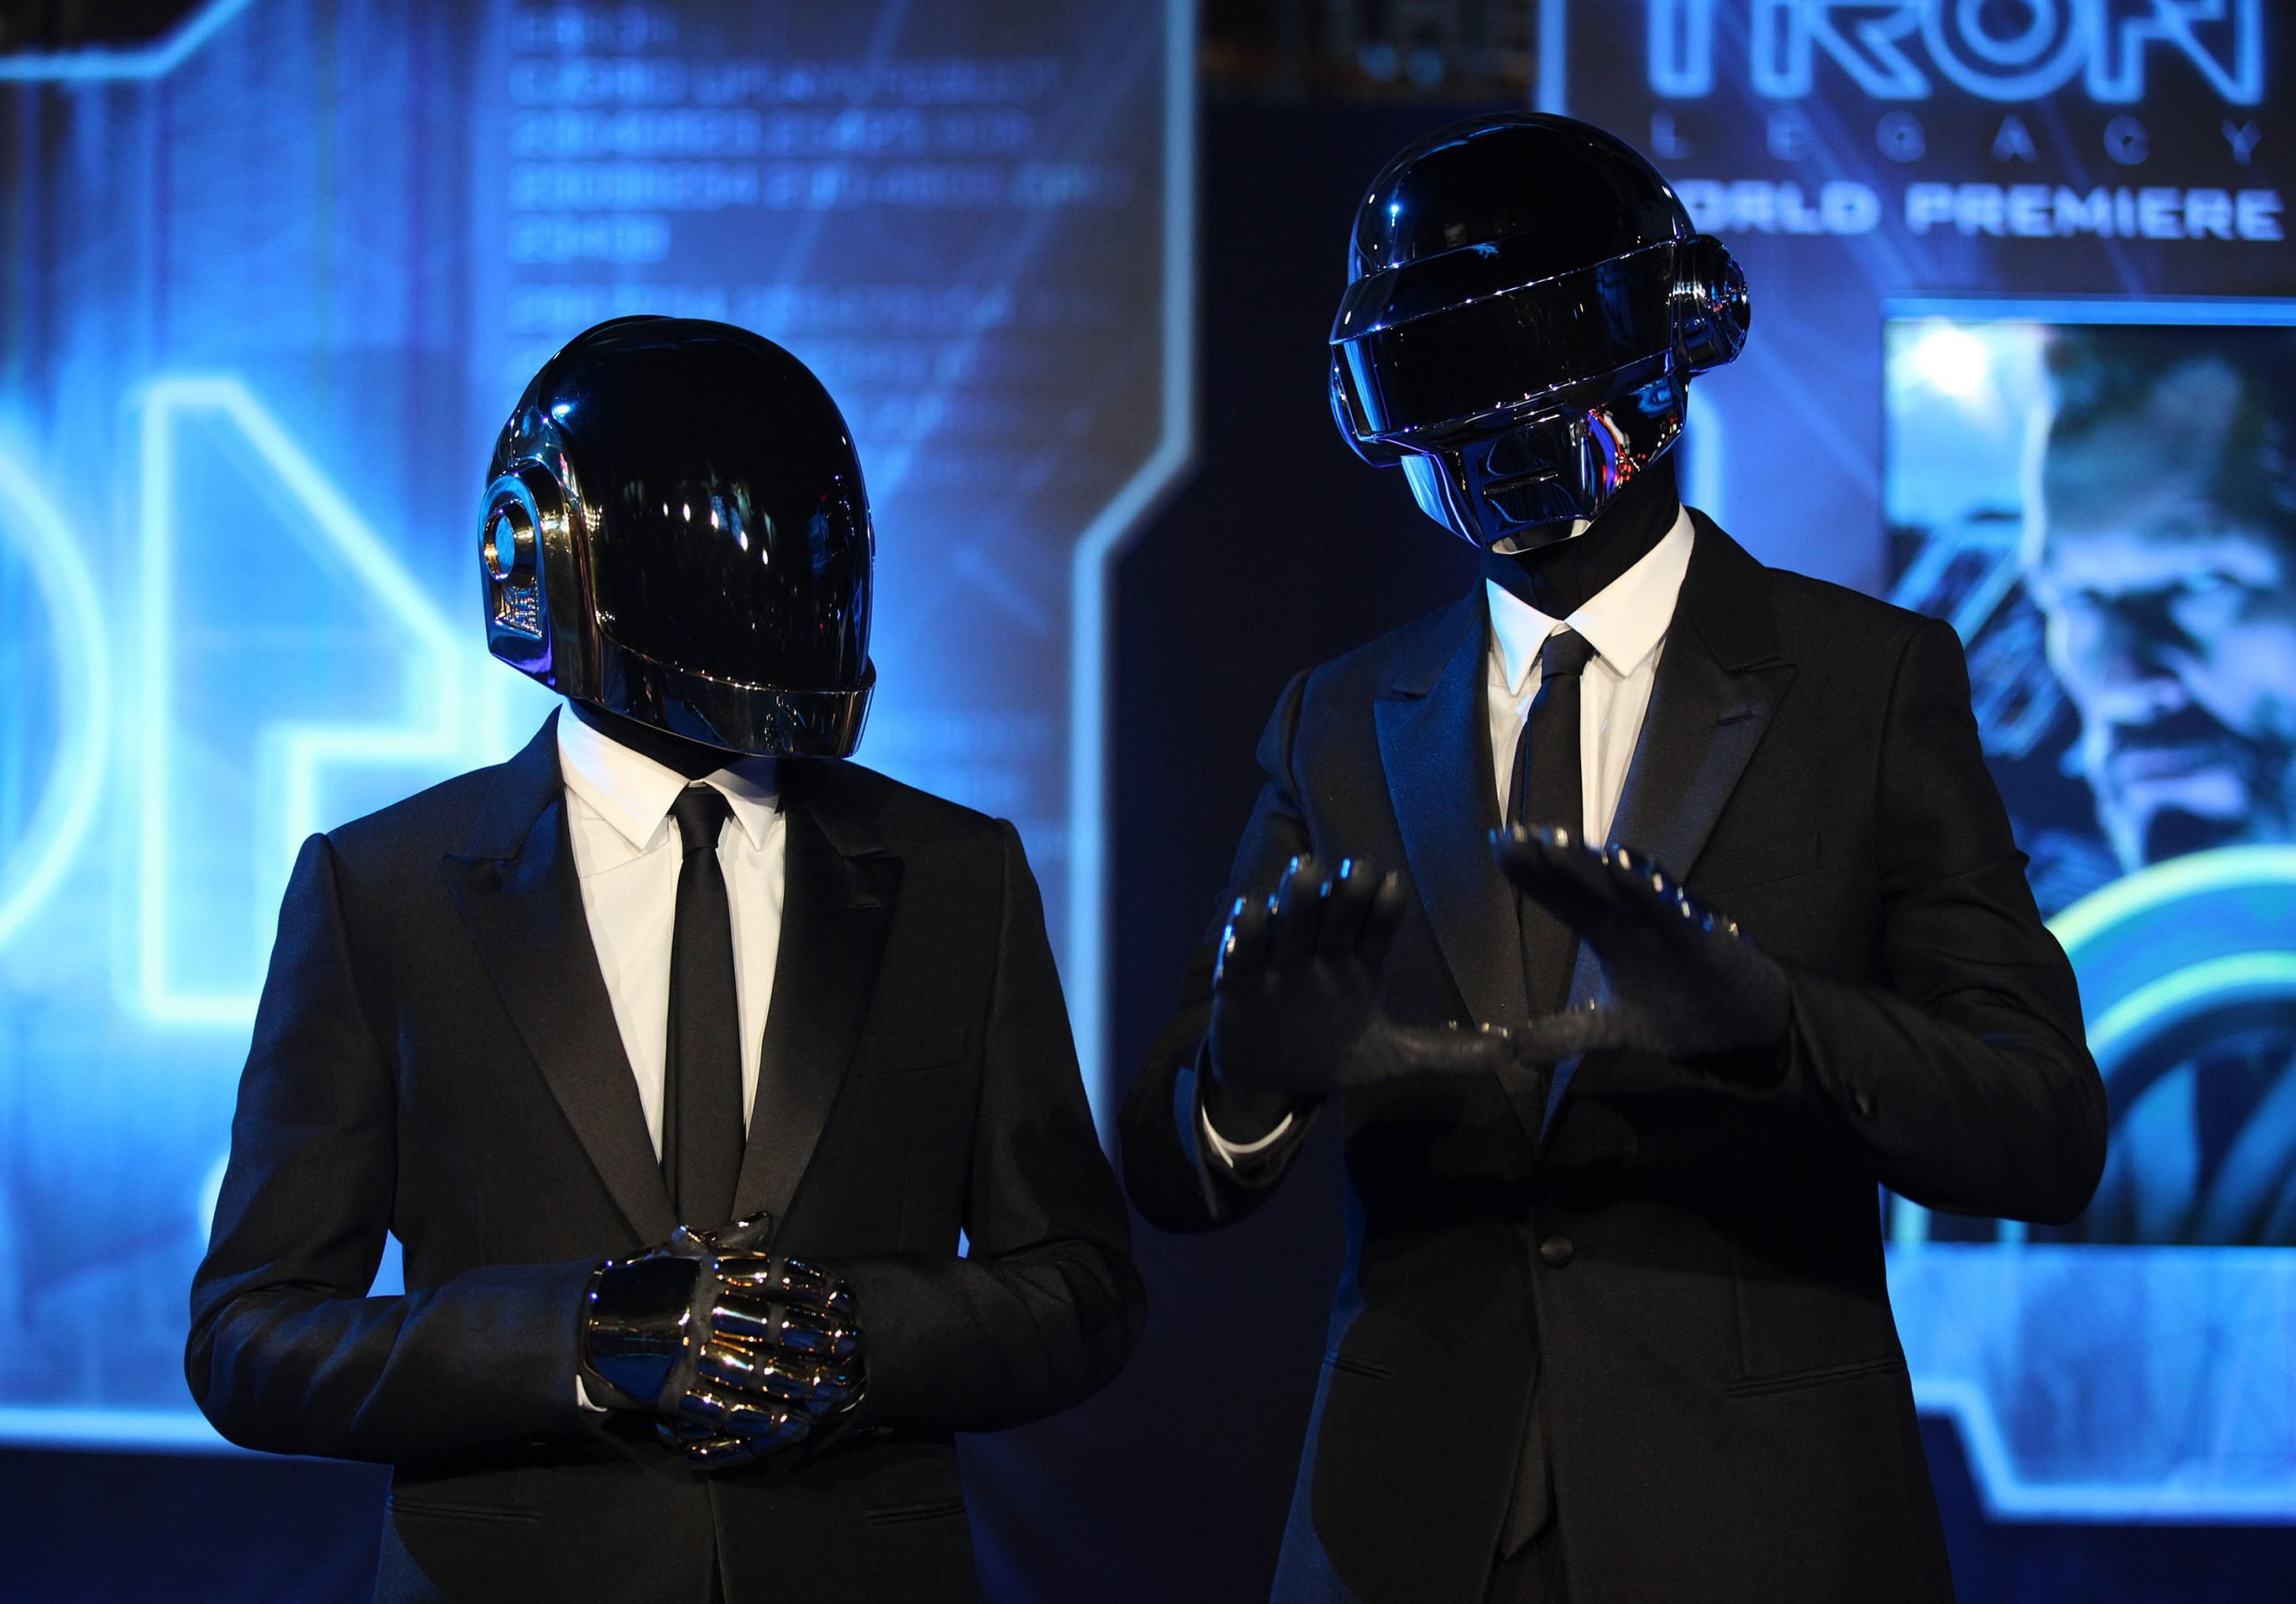 Daft Punk attend a red carpet event. They are wearing black suits and black helmets covering their faces. The background is an electronic blue with neon lights.